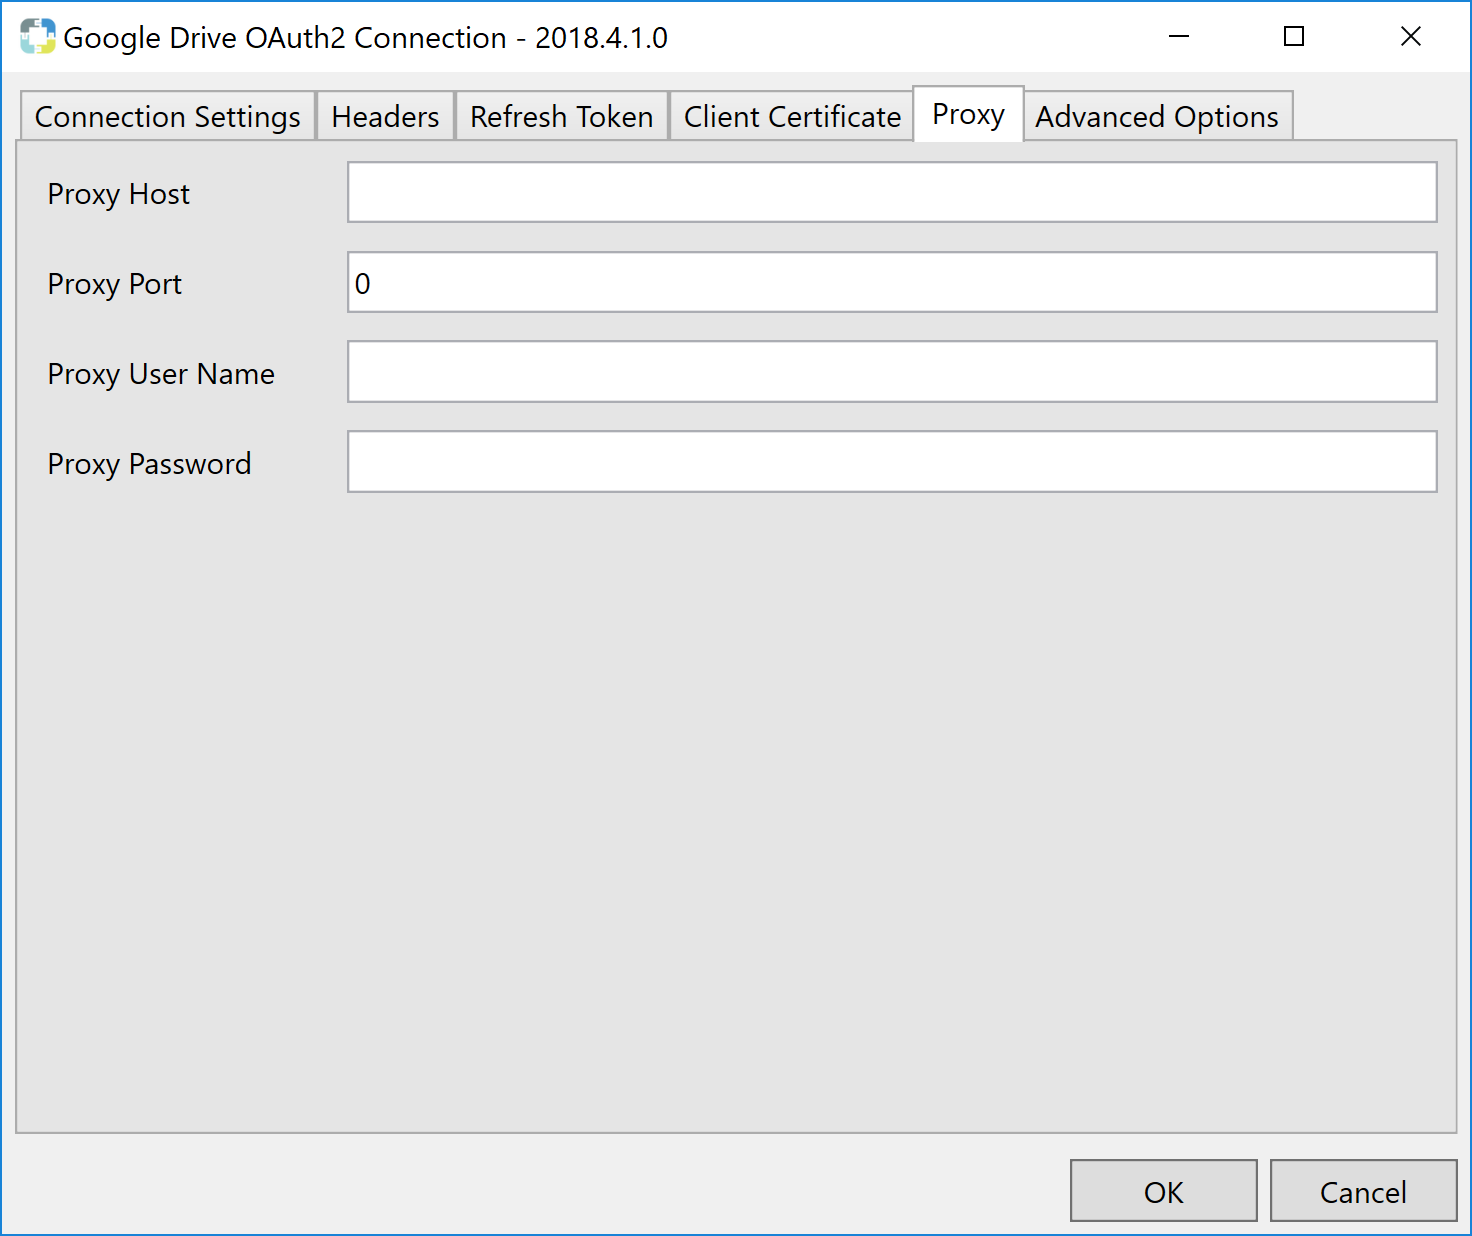 Task Factory Google Drive OAuth2 Connection Manager Proxy